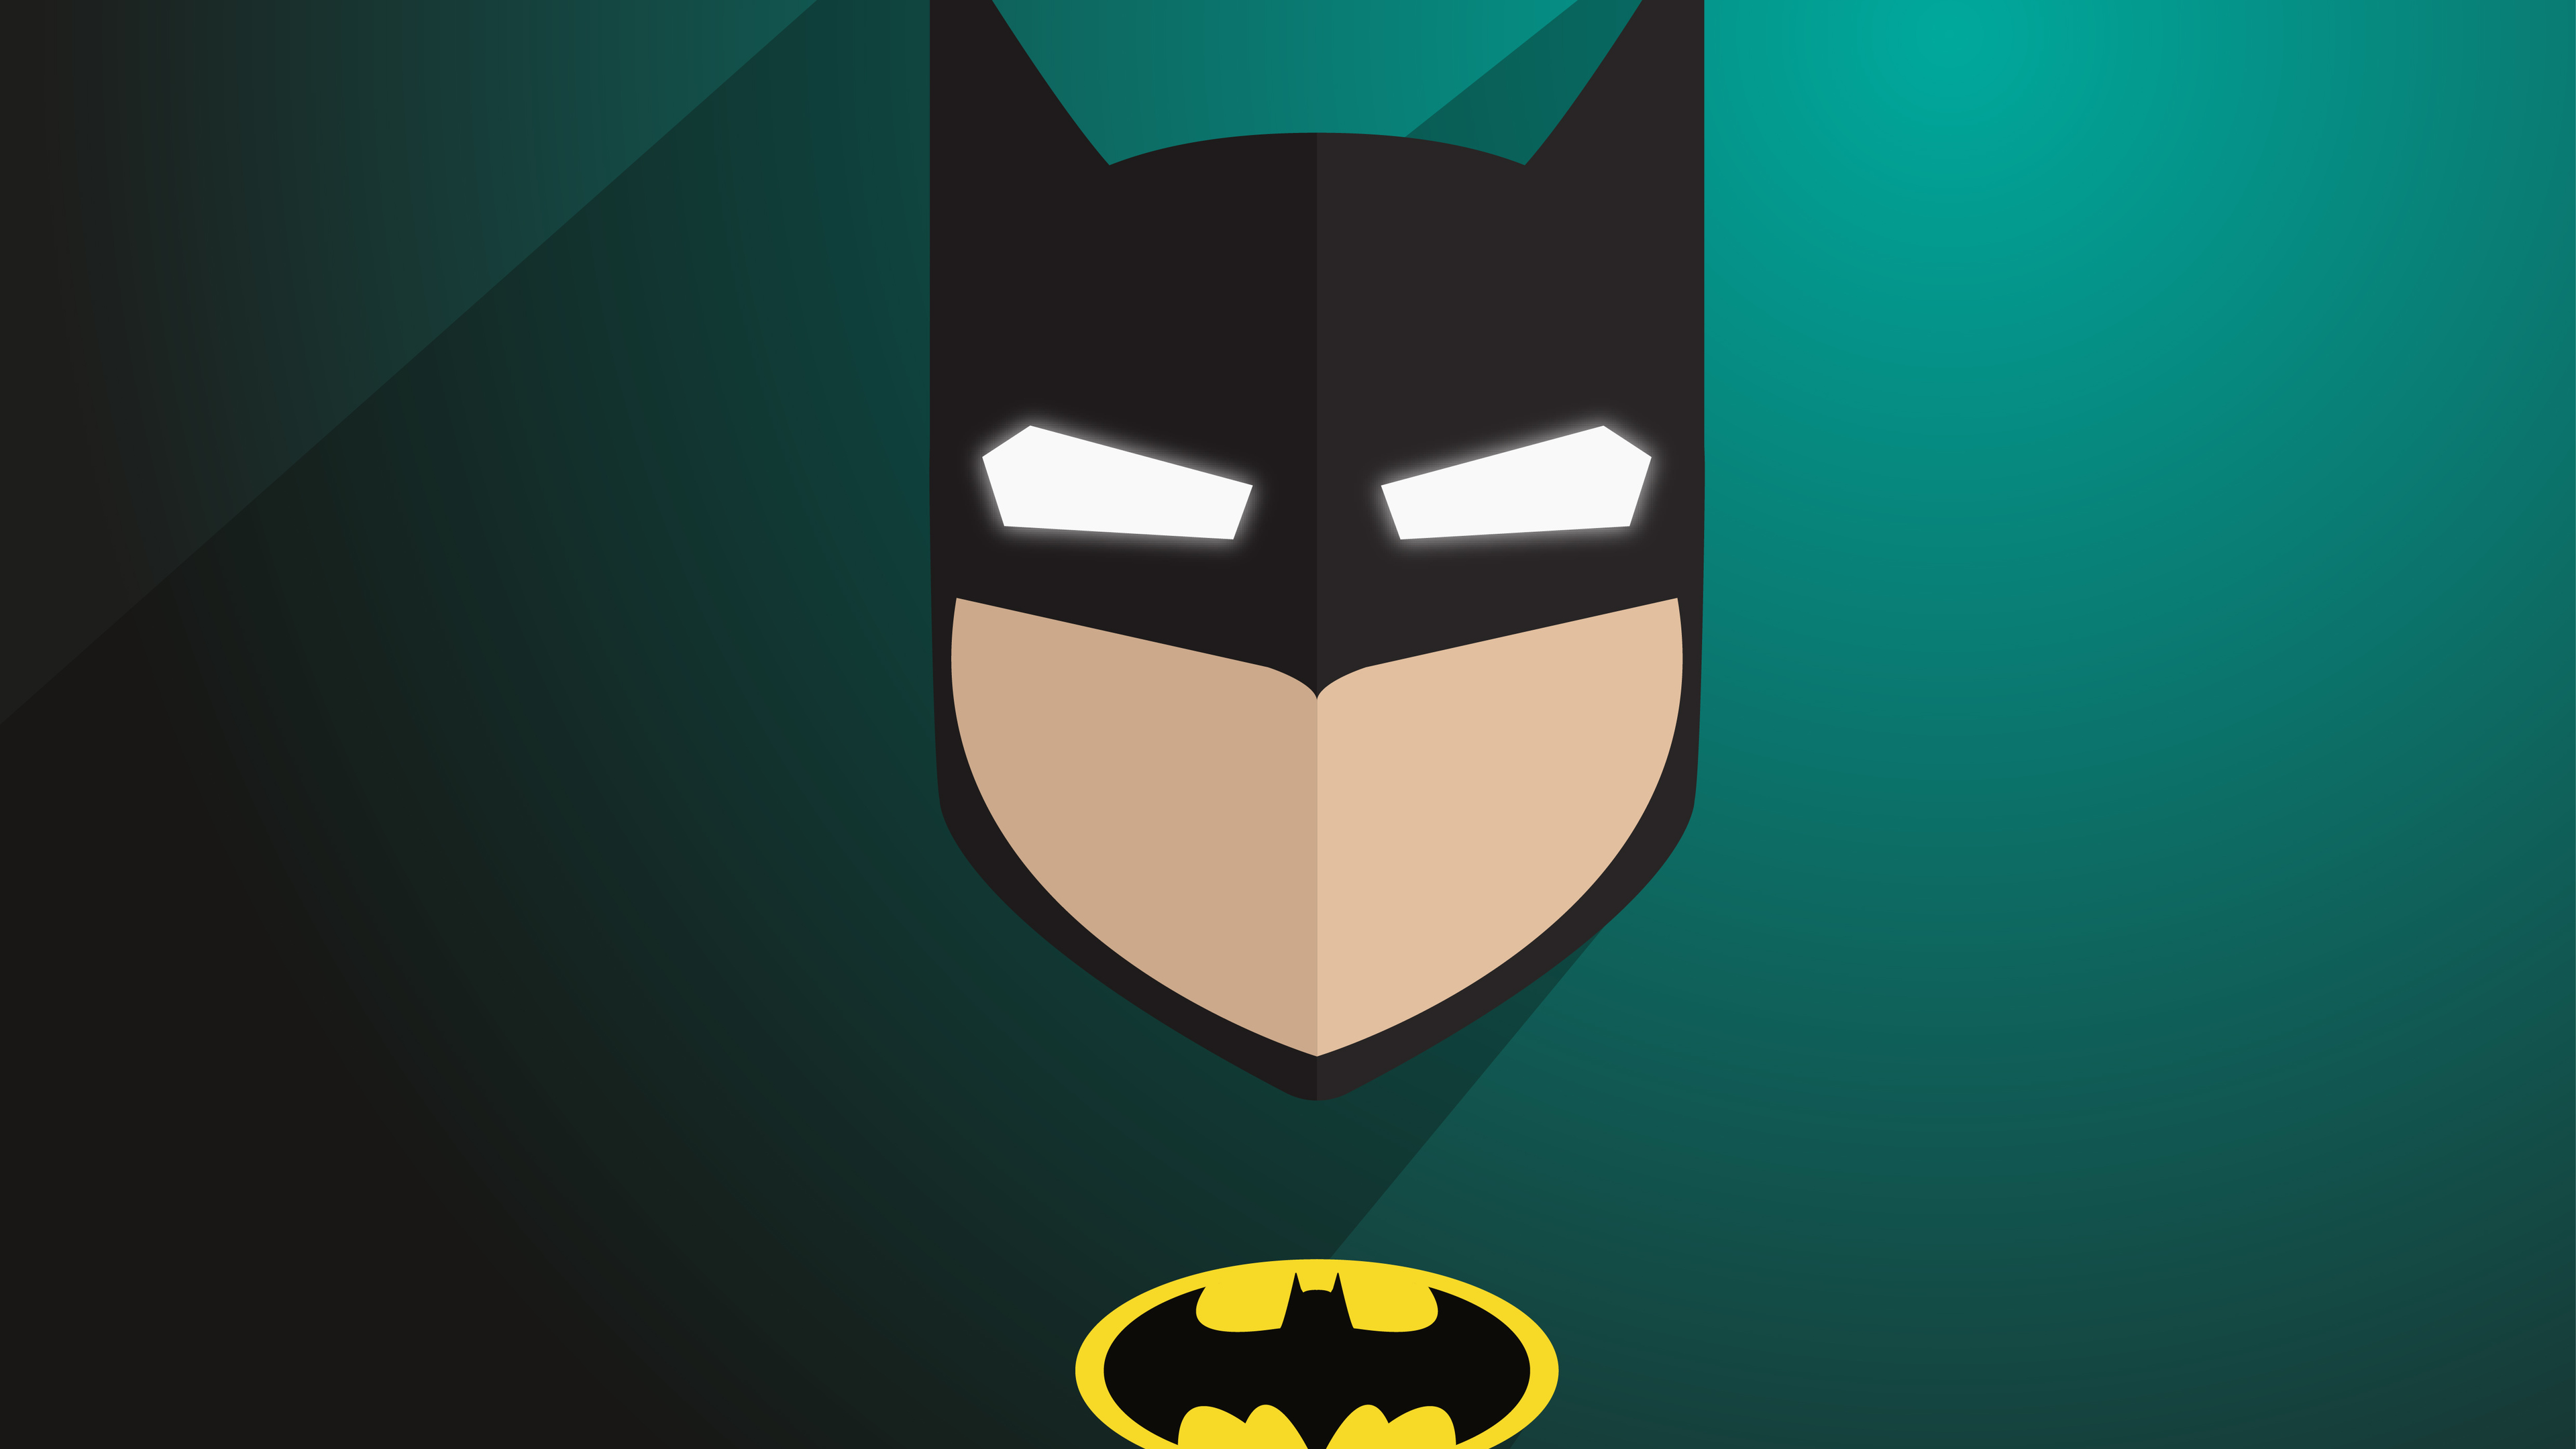 batman minimalism 4k 1545588723 - Batman Minimalism 4k - superheroes wallpapers, minimalism wallpapers, hd-wallpapers, batman wallpapers, 4k-wallpapers